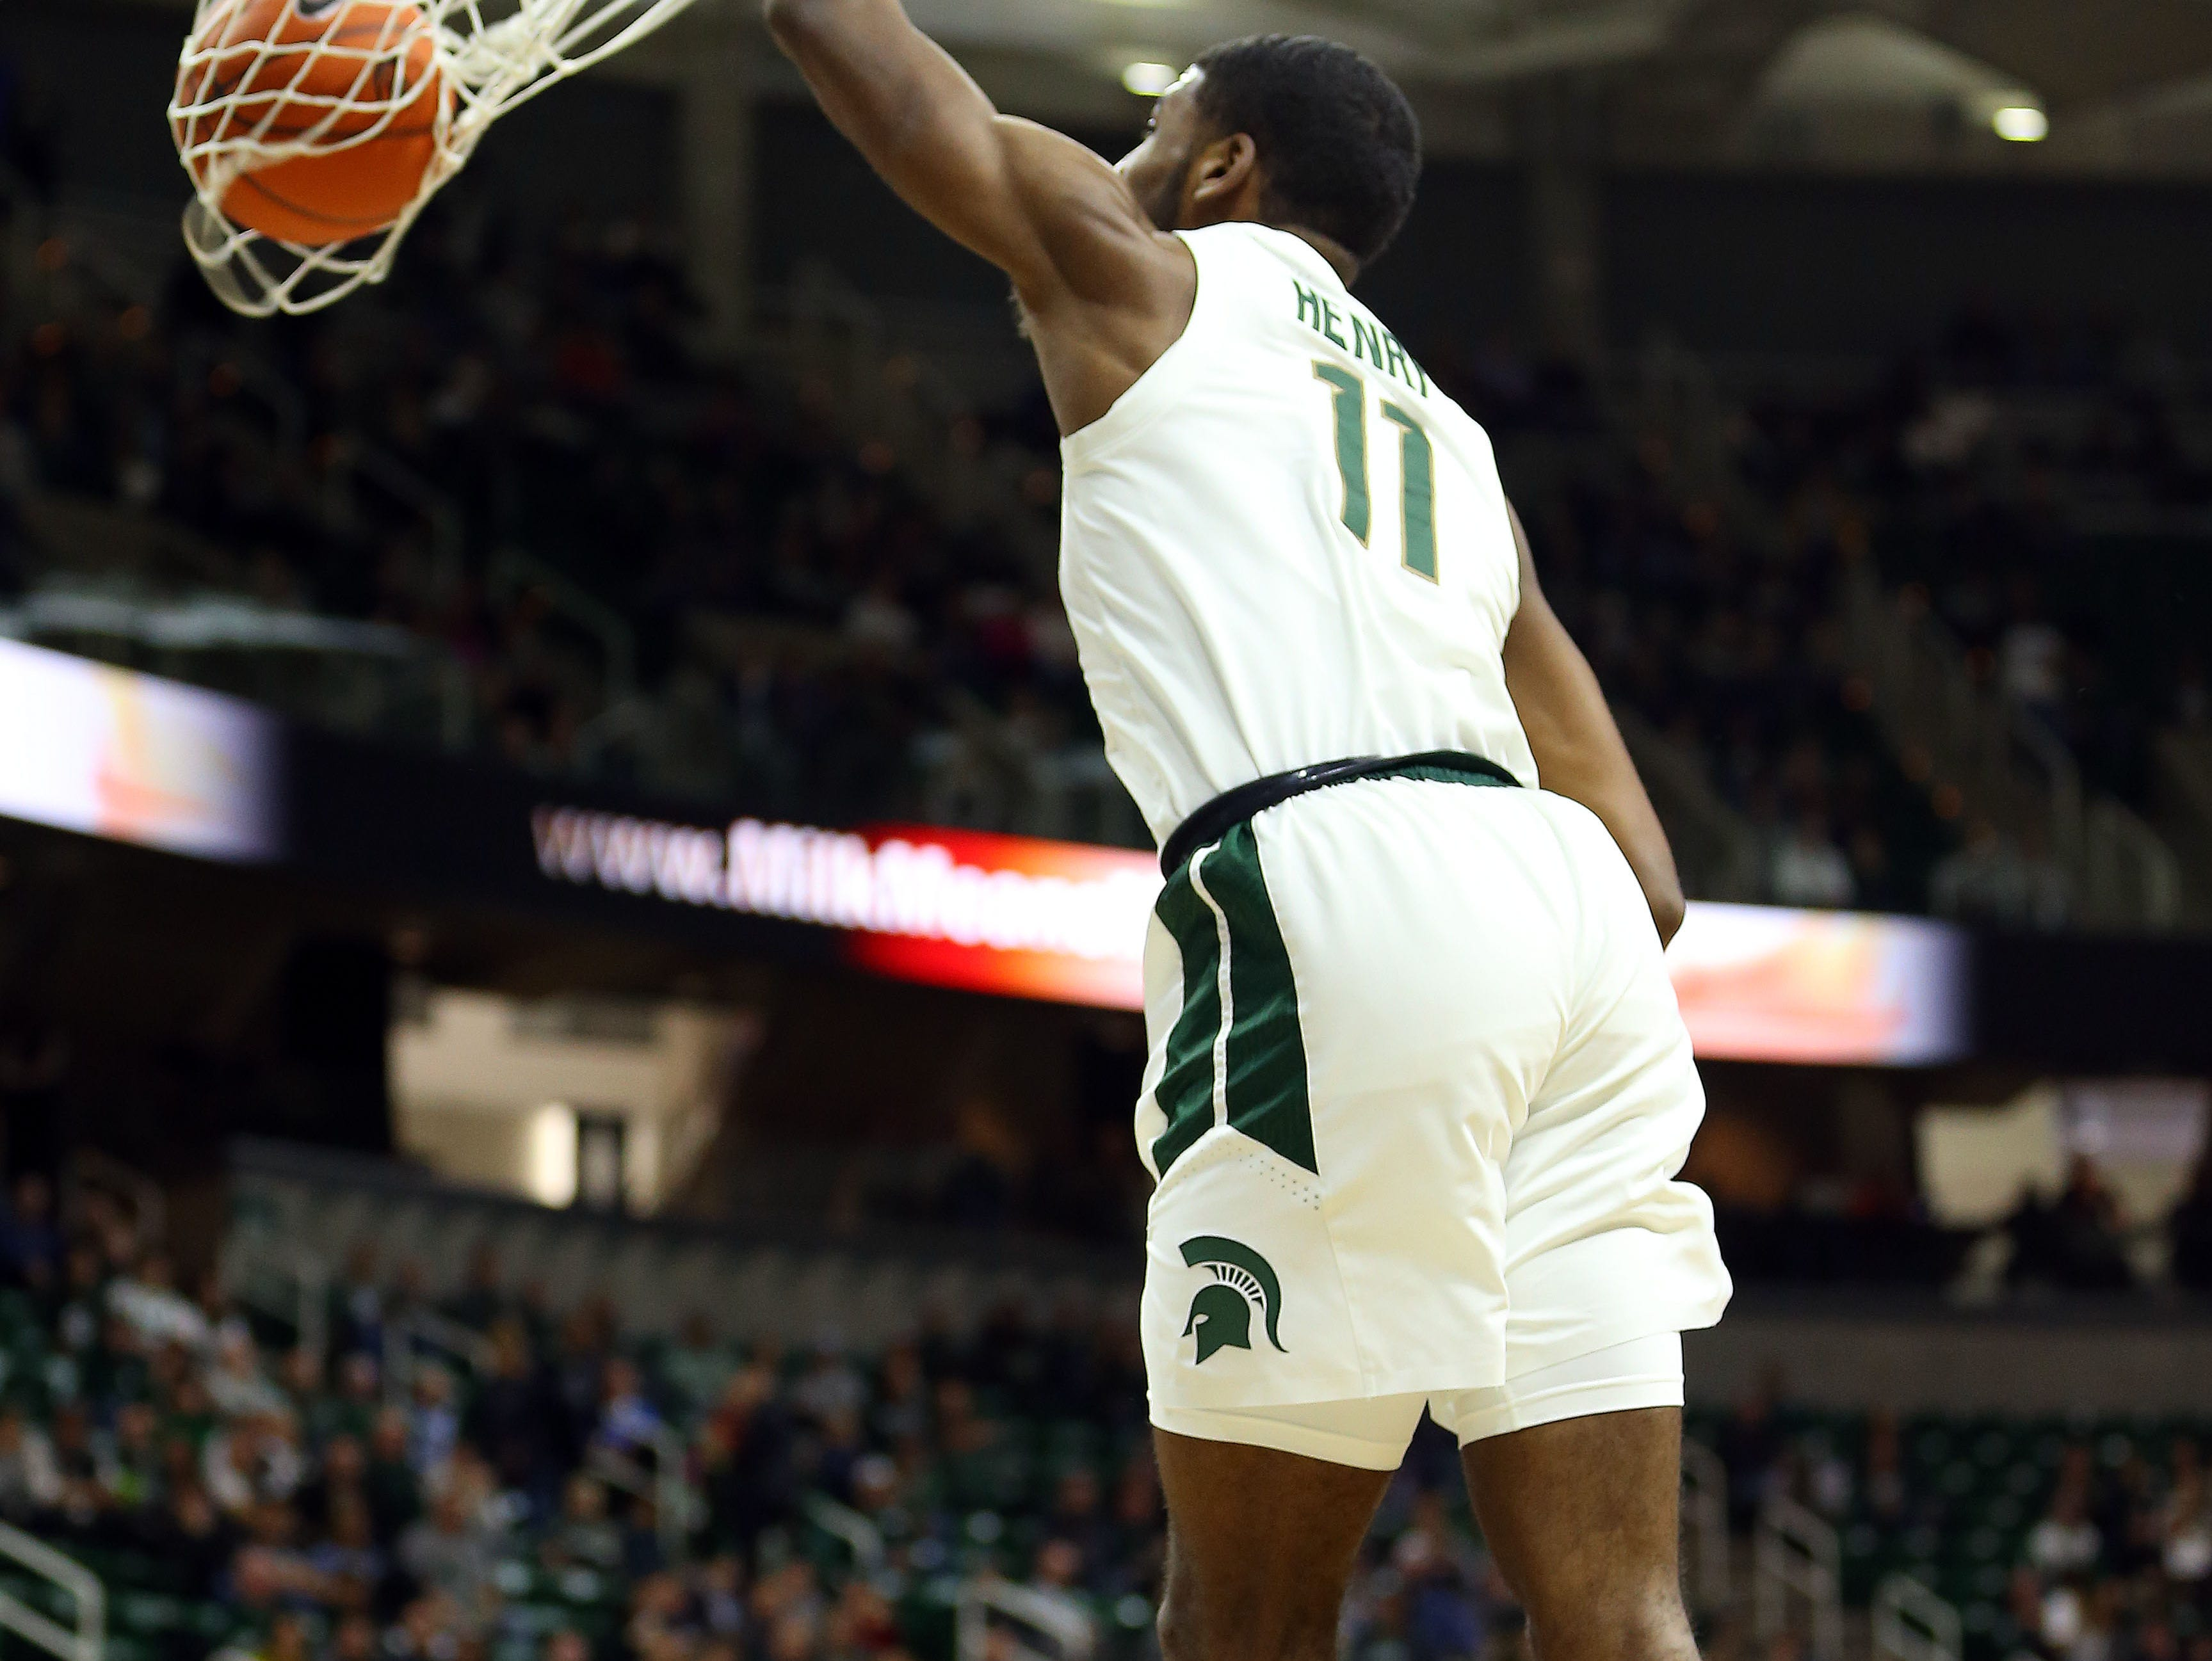 Nov 11, 2018; East Lansing, MI, USA; Michigan State Spartans forward Aaron Henry (11) dunks the ball against the Florida Gulf Coast Eagles during the second half of a game at the Breslin Center. Mandatory Credit: Mike Carter-USA TODAY Sports